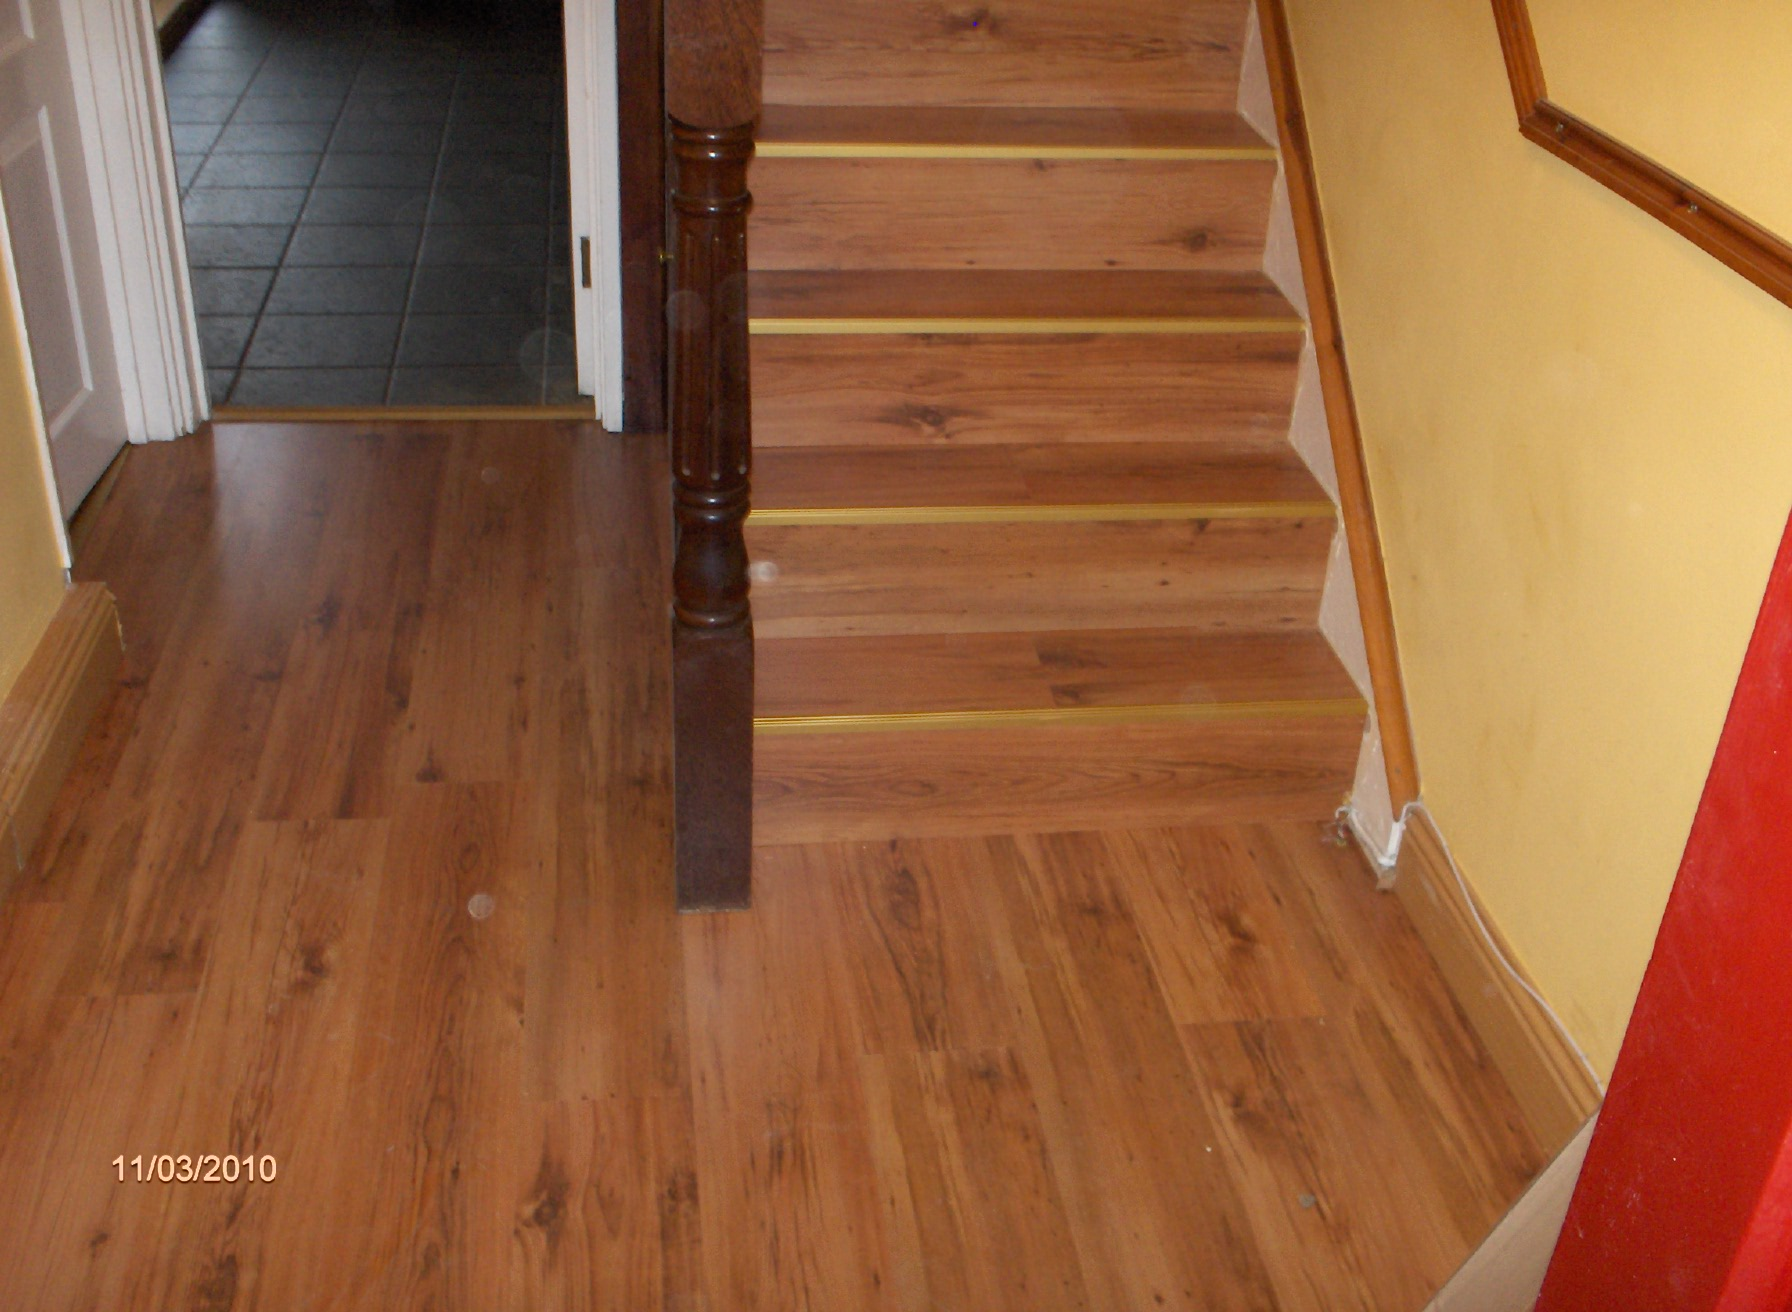 hall stairs and landing done in laminate flooring.